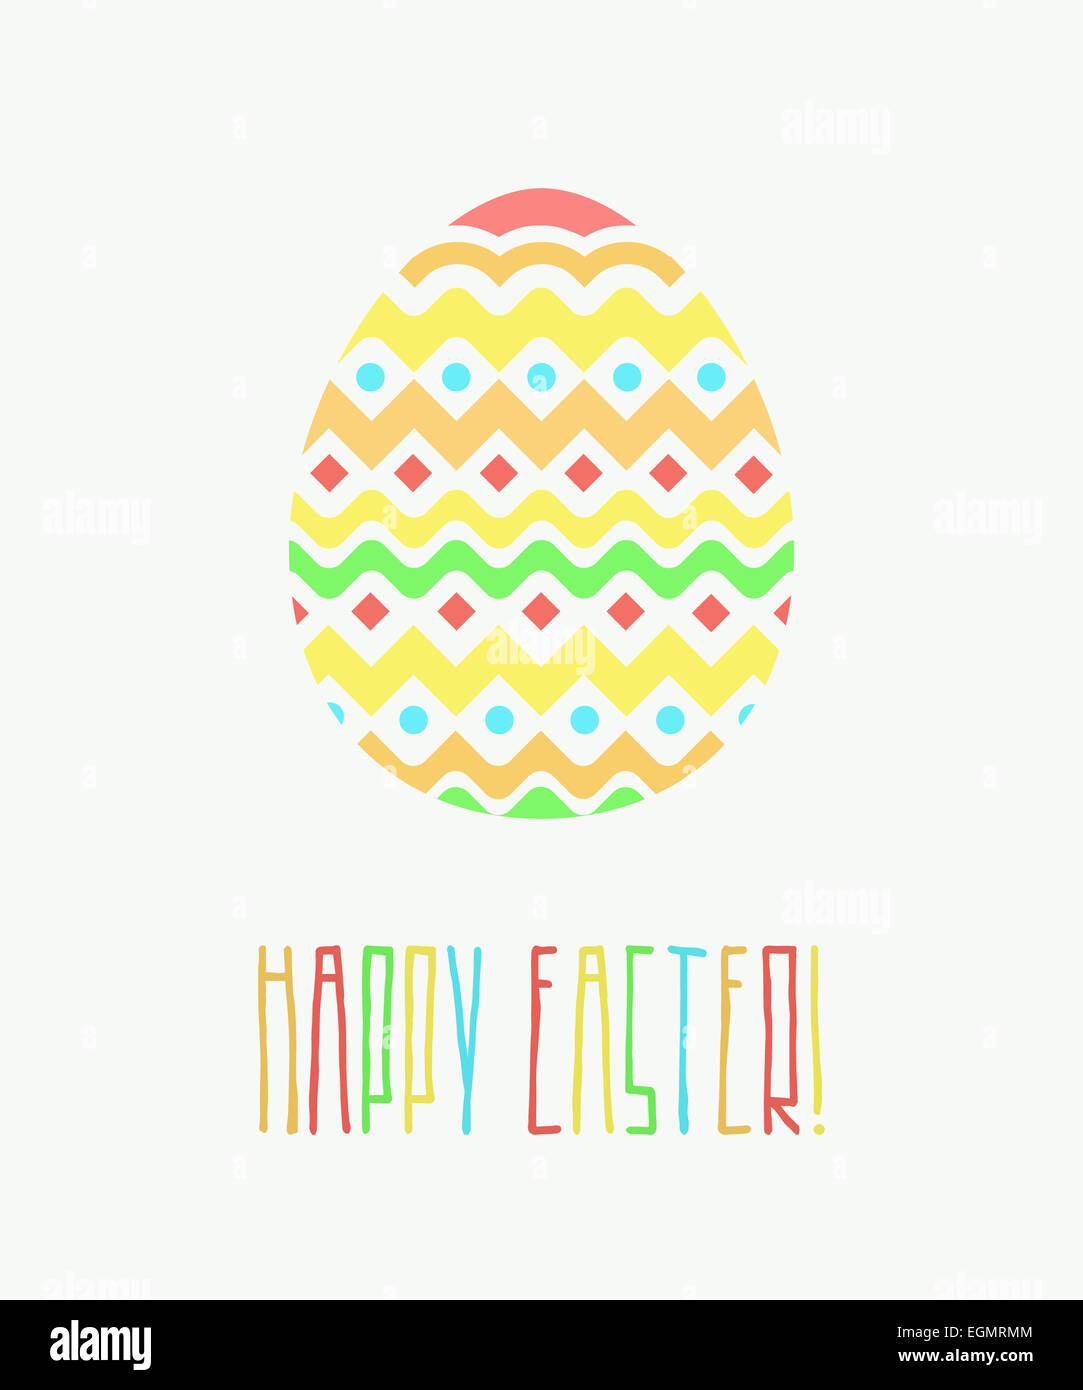 Colorful Happy Easter Greeting Card With Decorative Egg And Words On